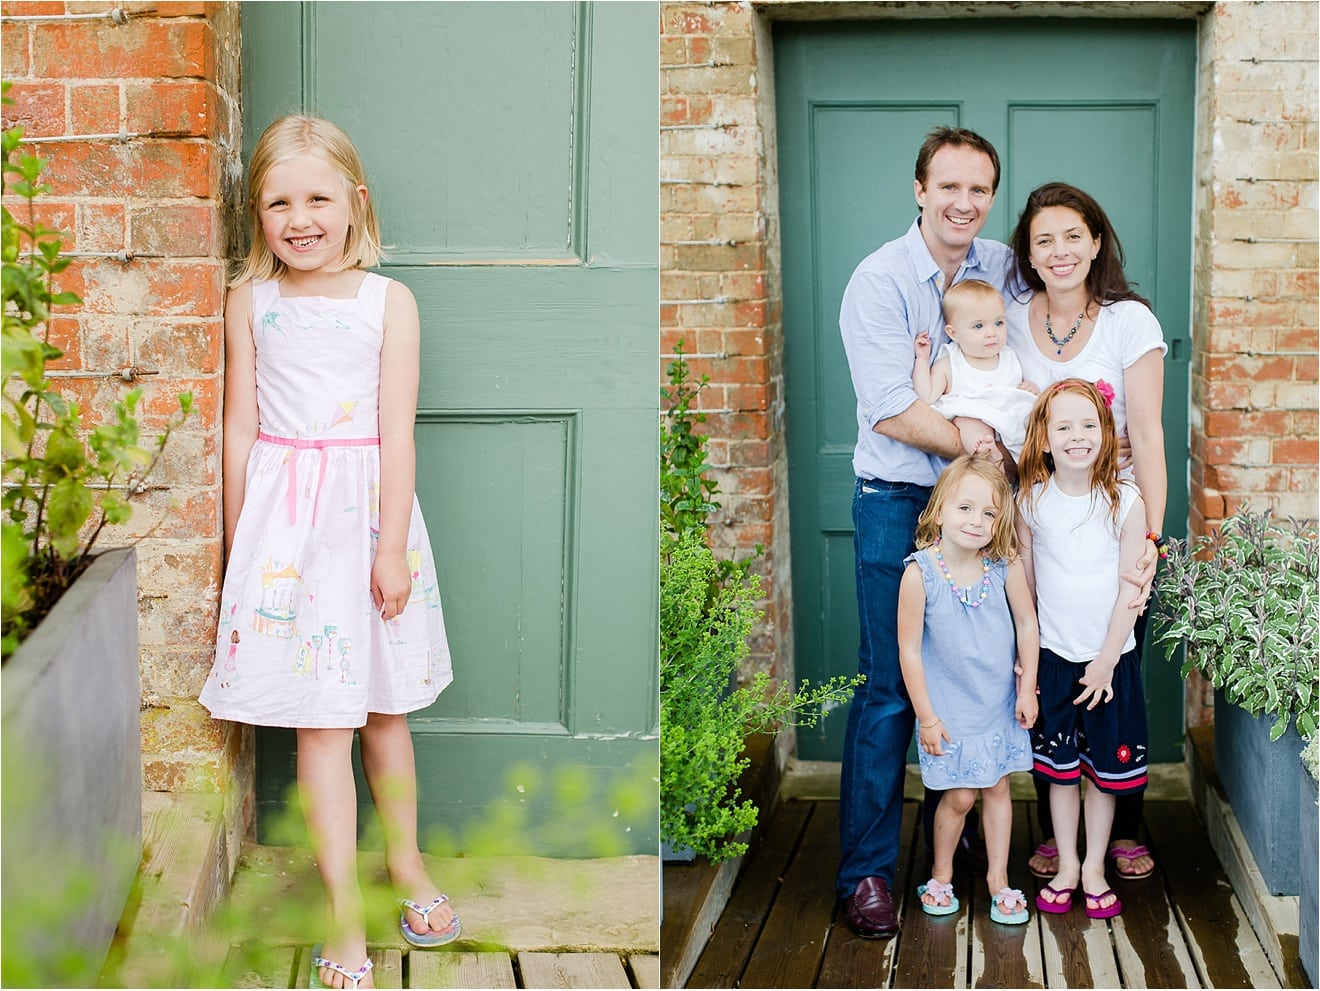 family-photography-surrey-eddie-judd-photographer-mini-sessions-cobham-medicine-garden_0014